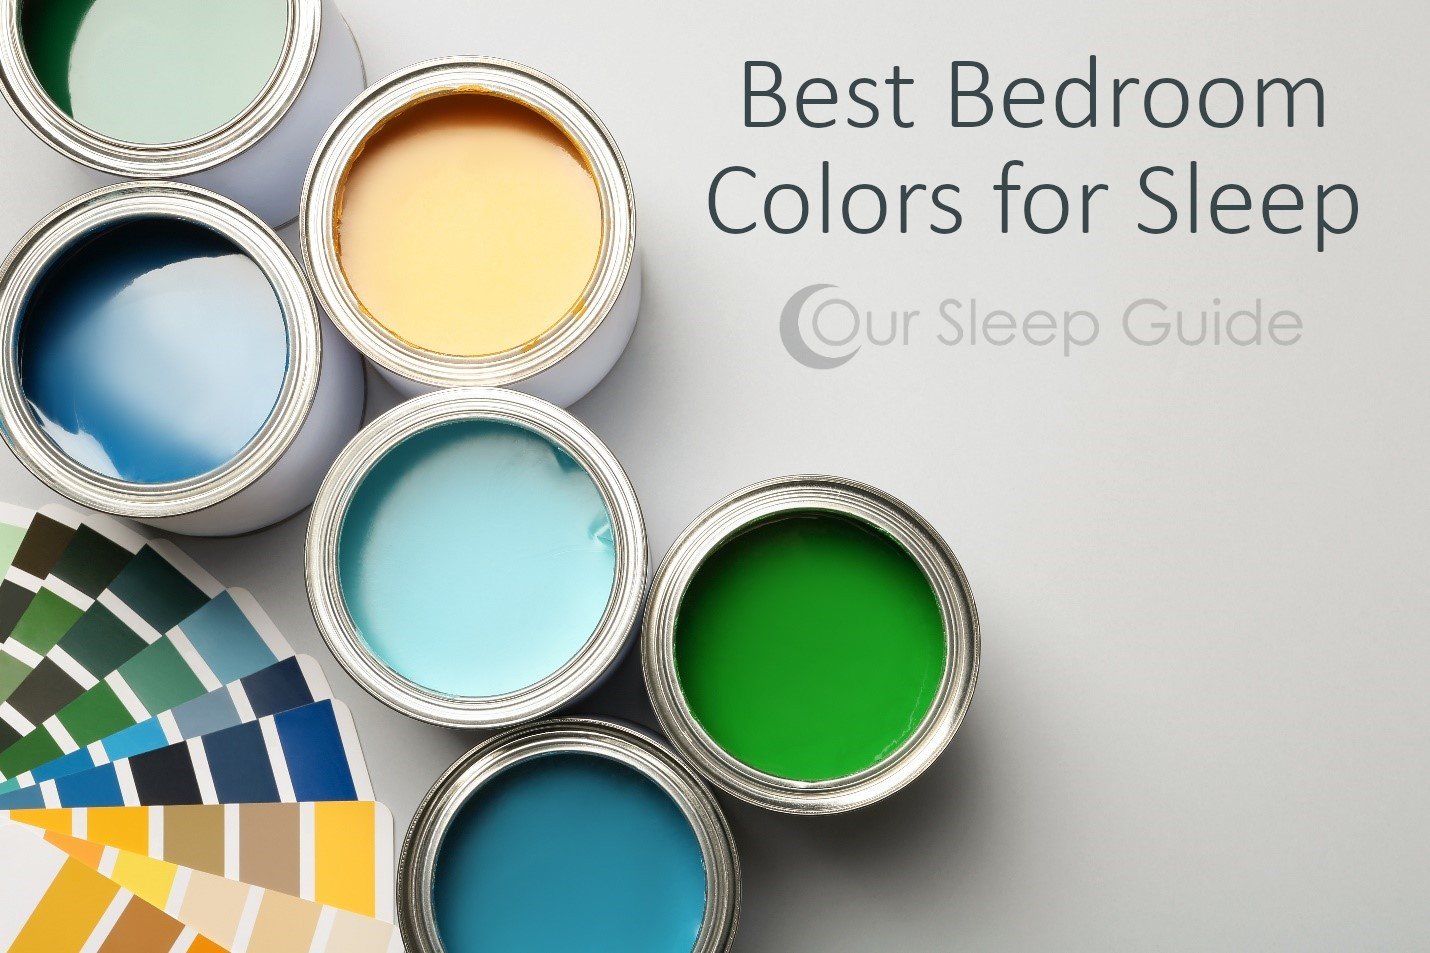 what are the best bedroom colors for sleep?